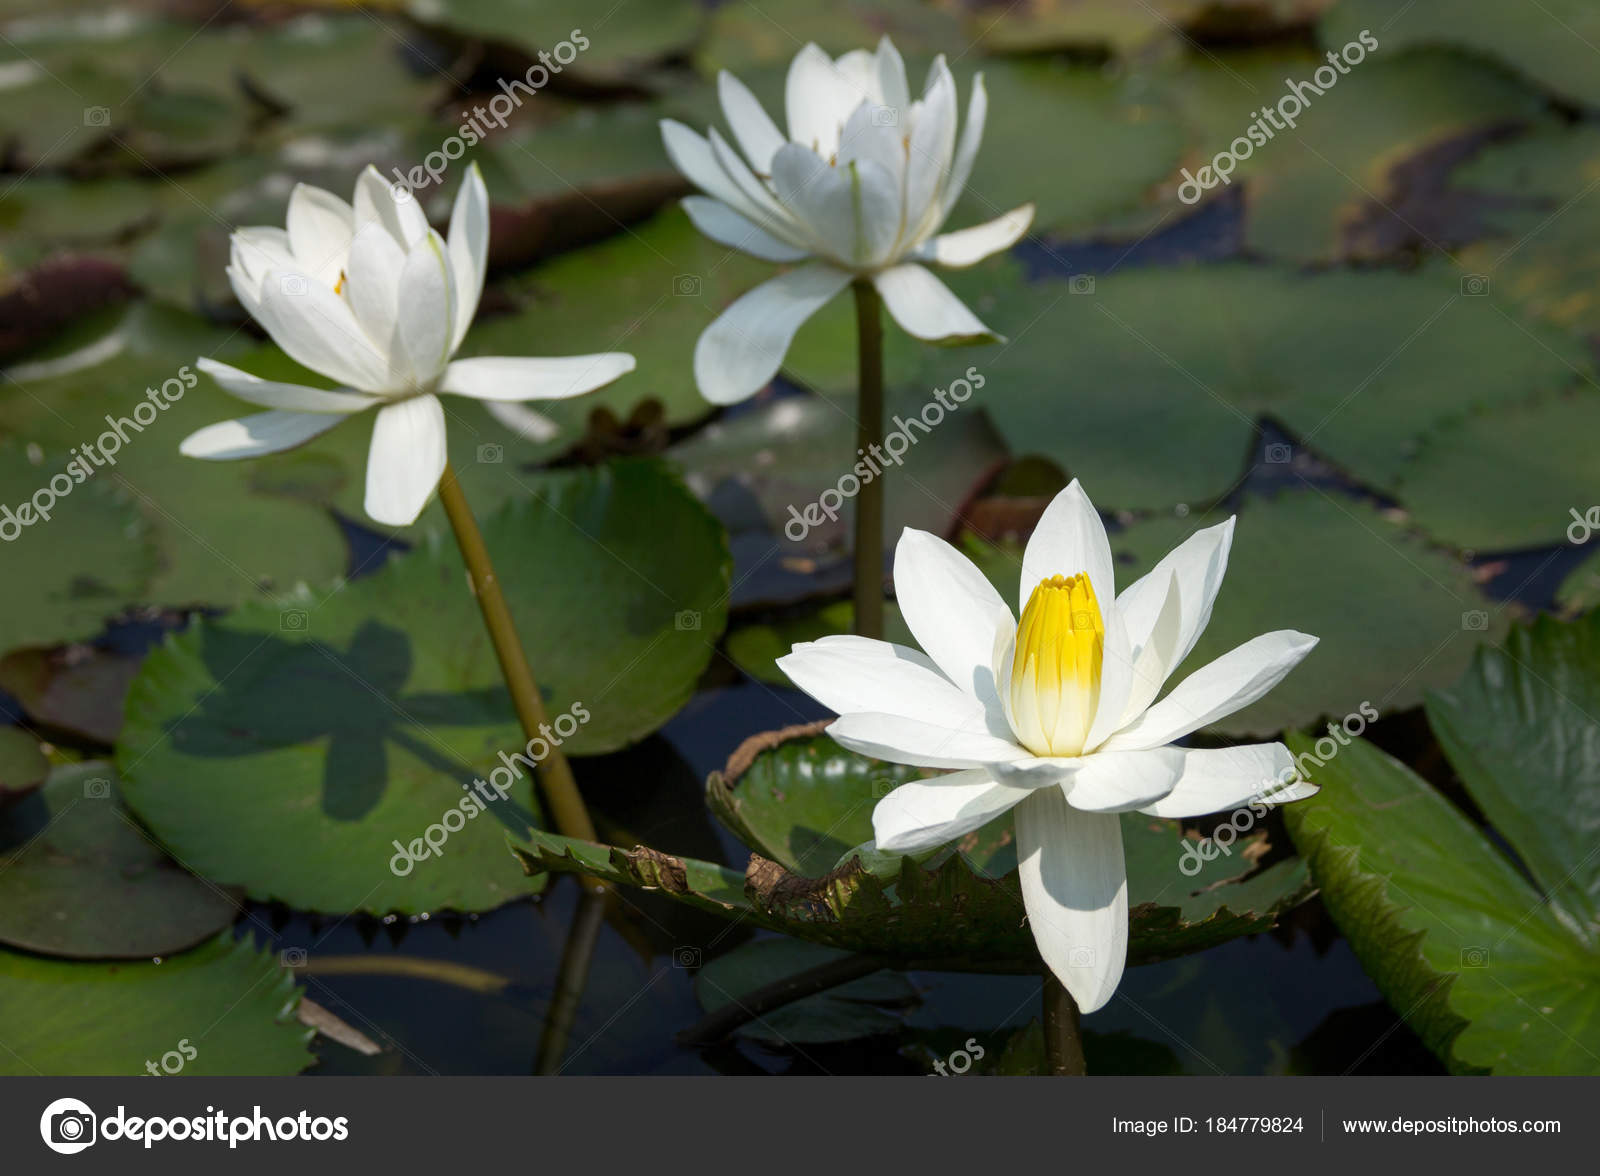 White lotus flower in pond stock photo aopsan 184779824 white lotus flower in pond stock photo izmirmasajfo